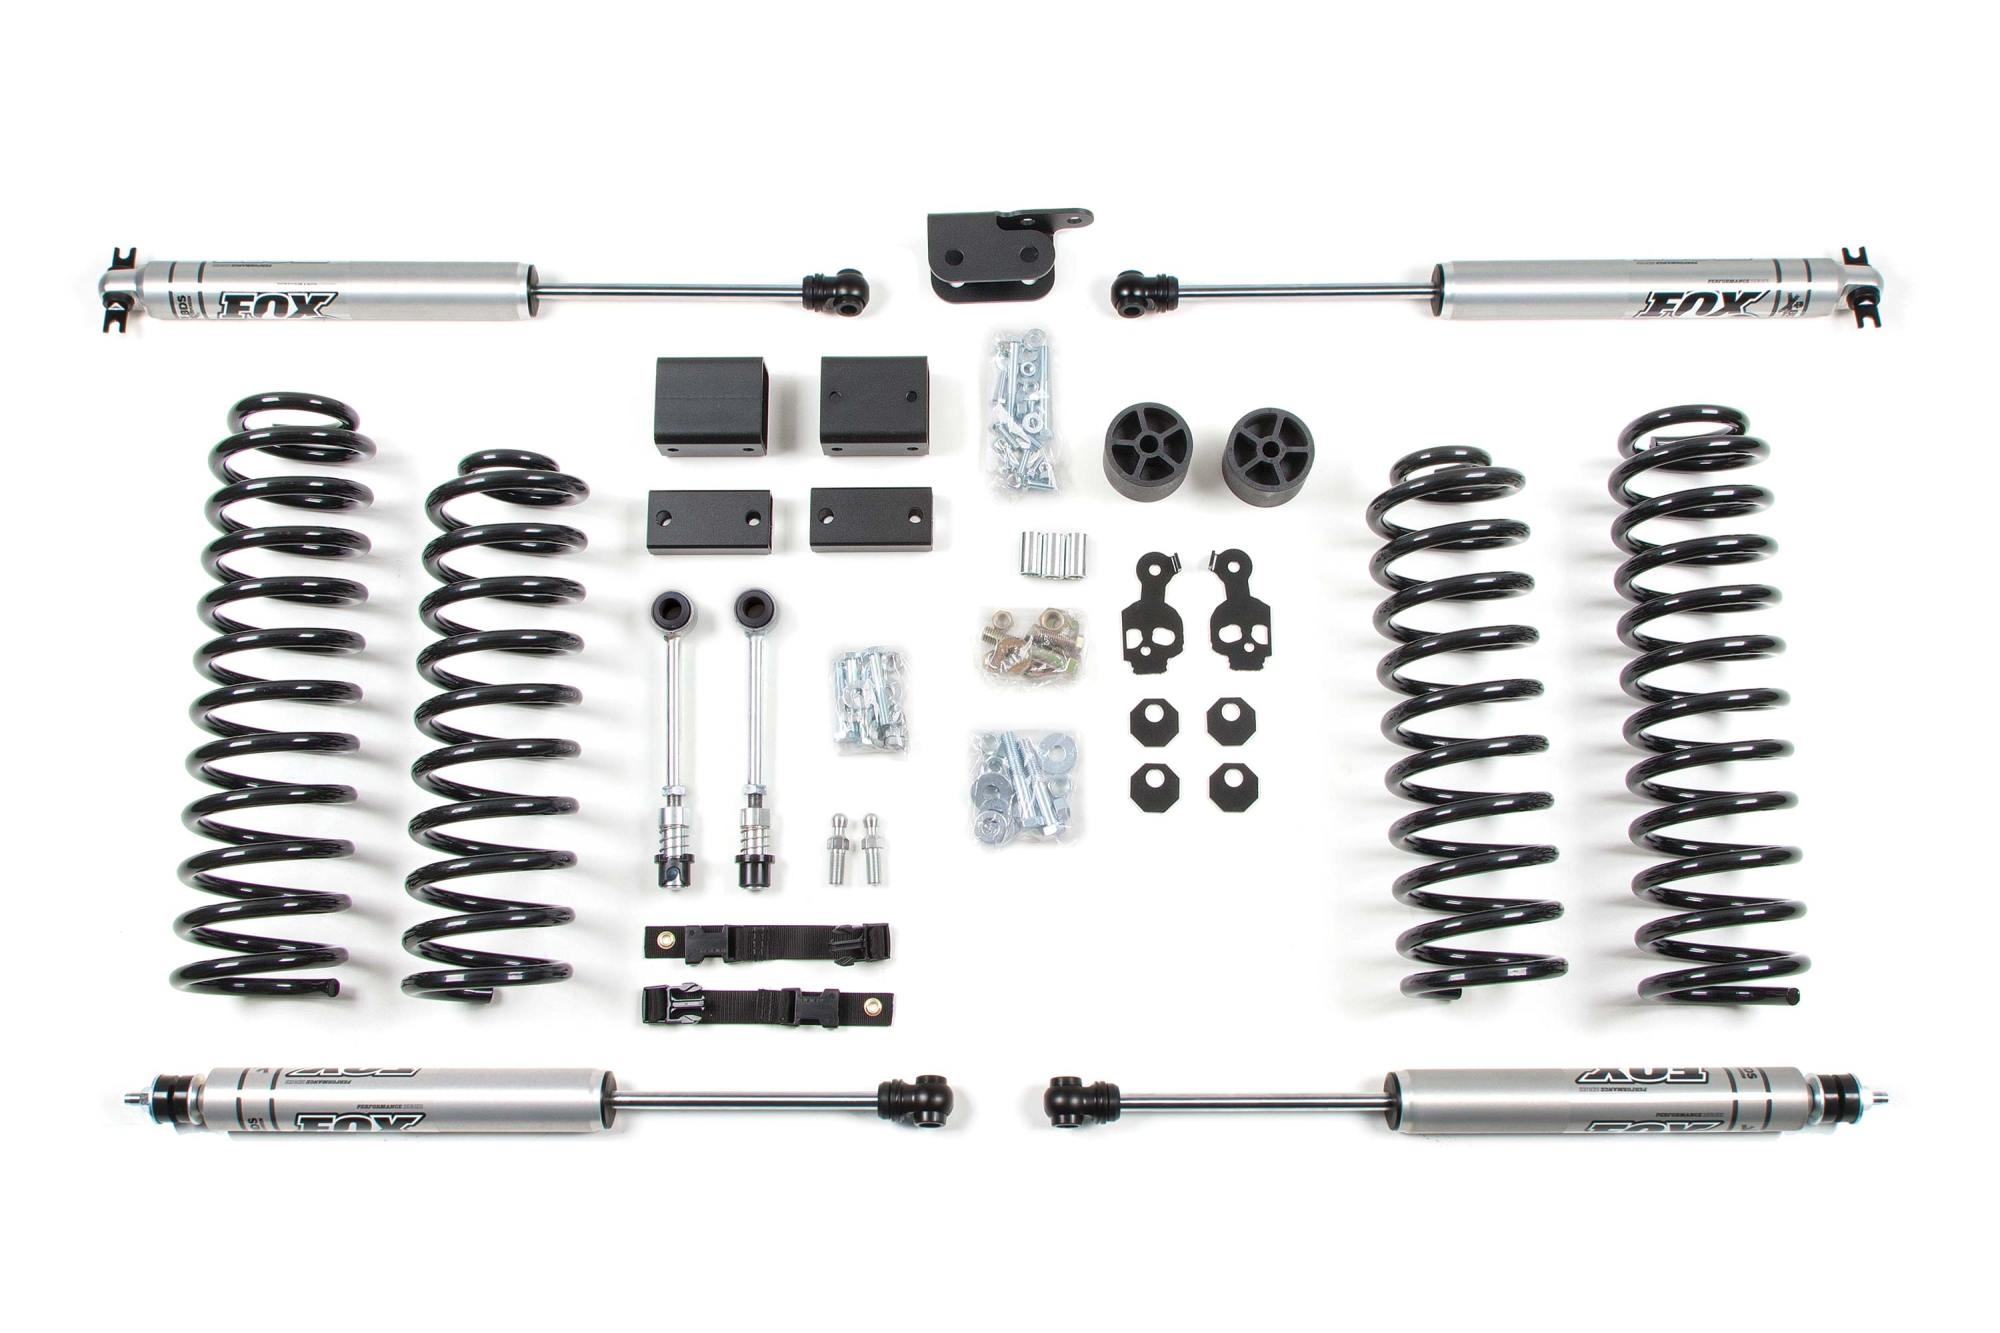 hight resolution of shocks shown may differ from base kit